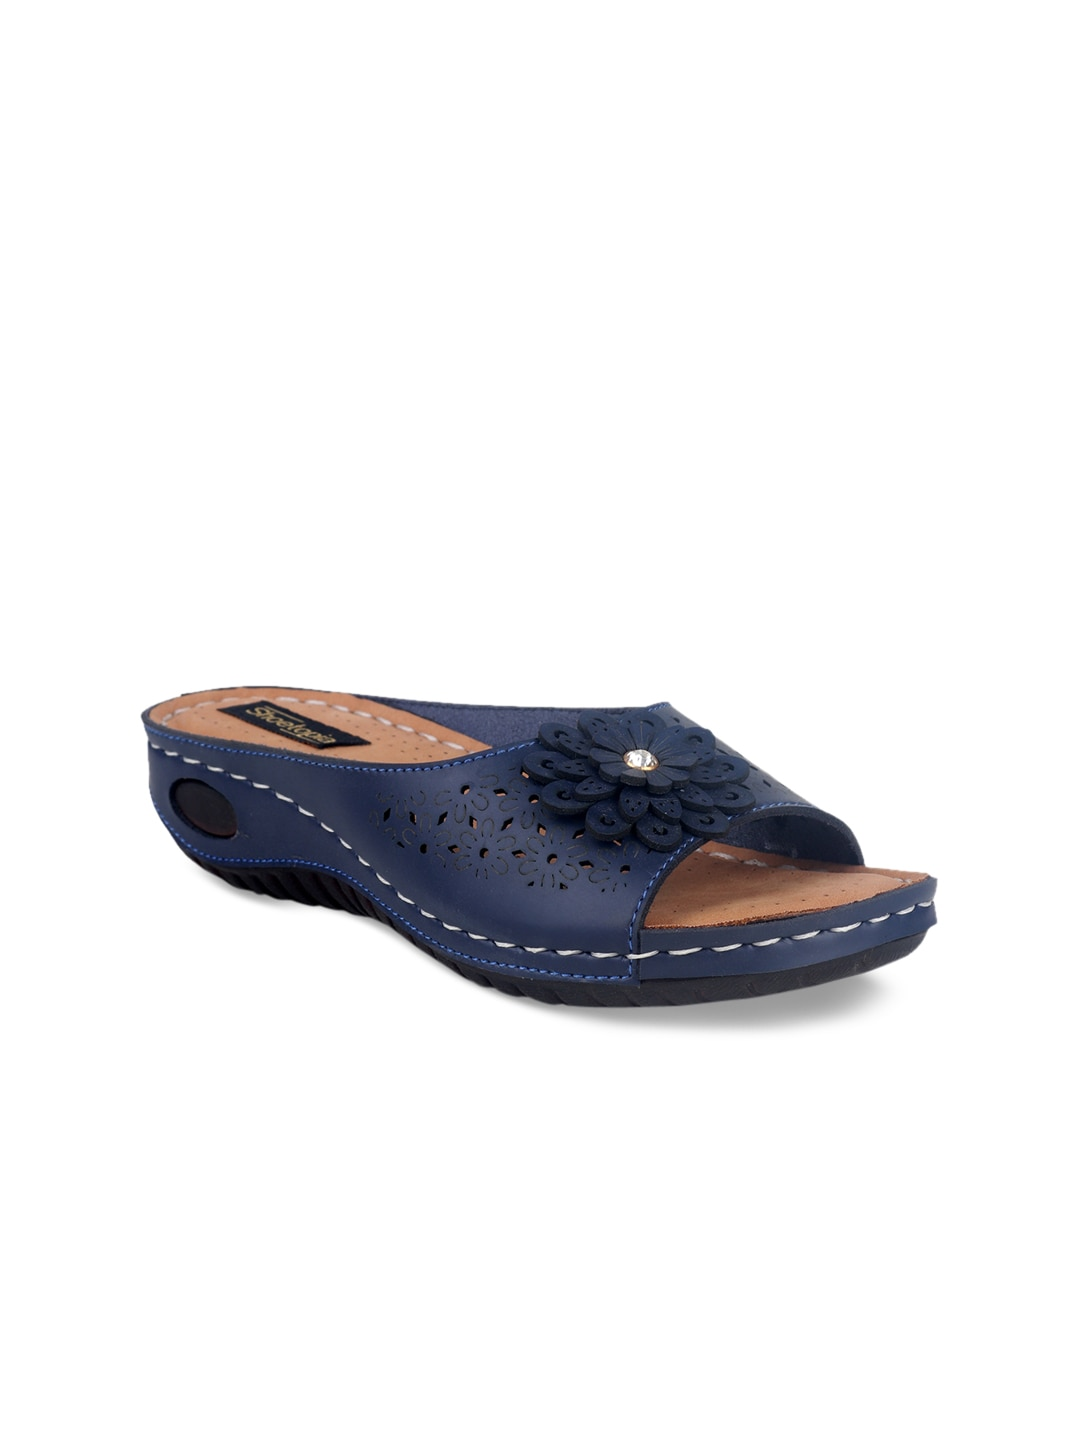 c14bbe58346 Blue Flats - Buy Blue Flats online in India